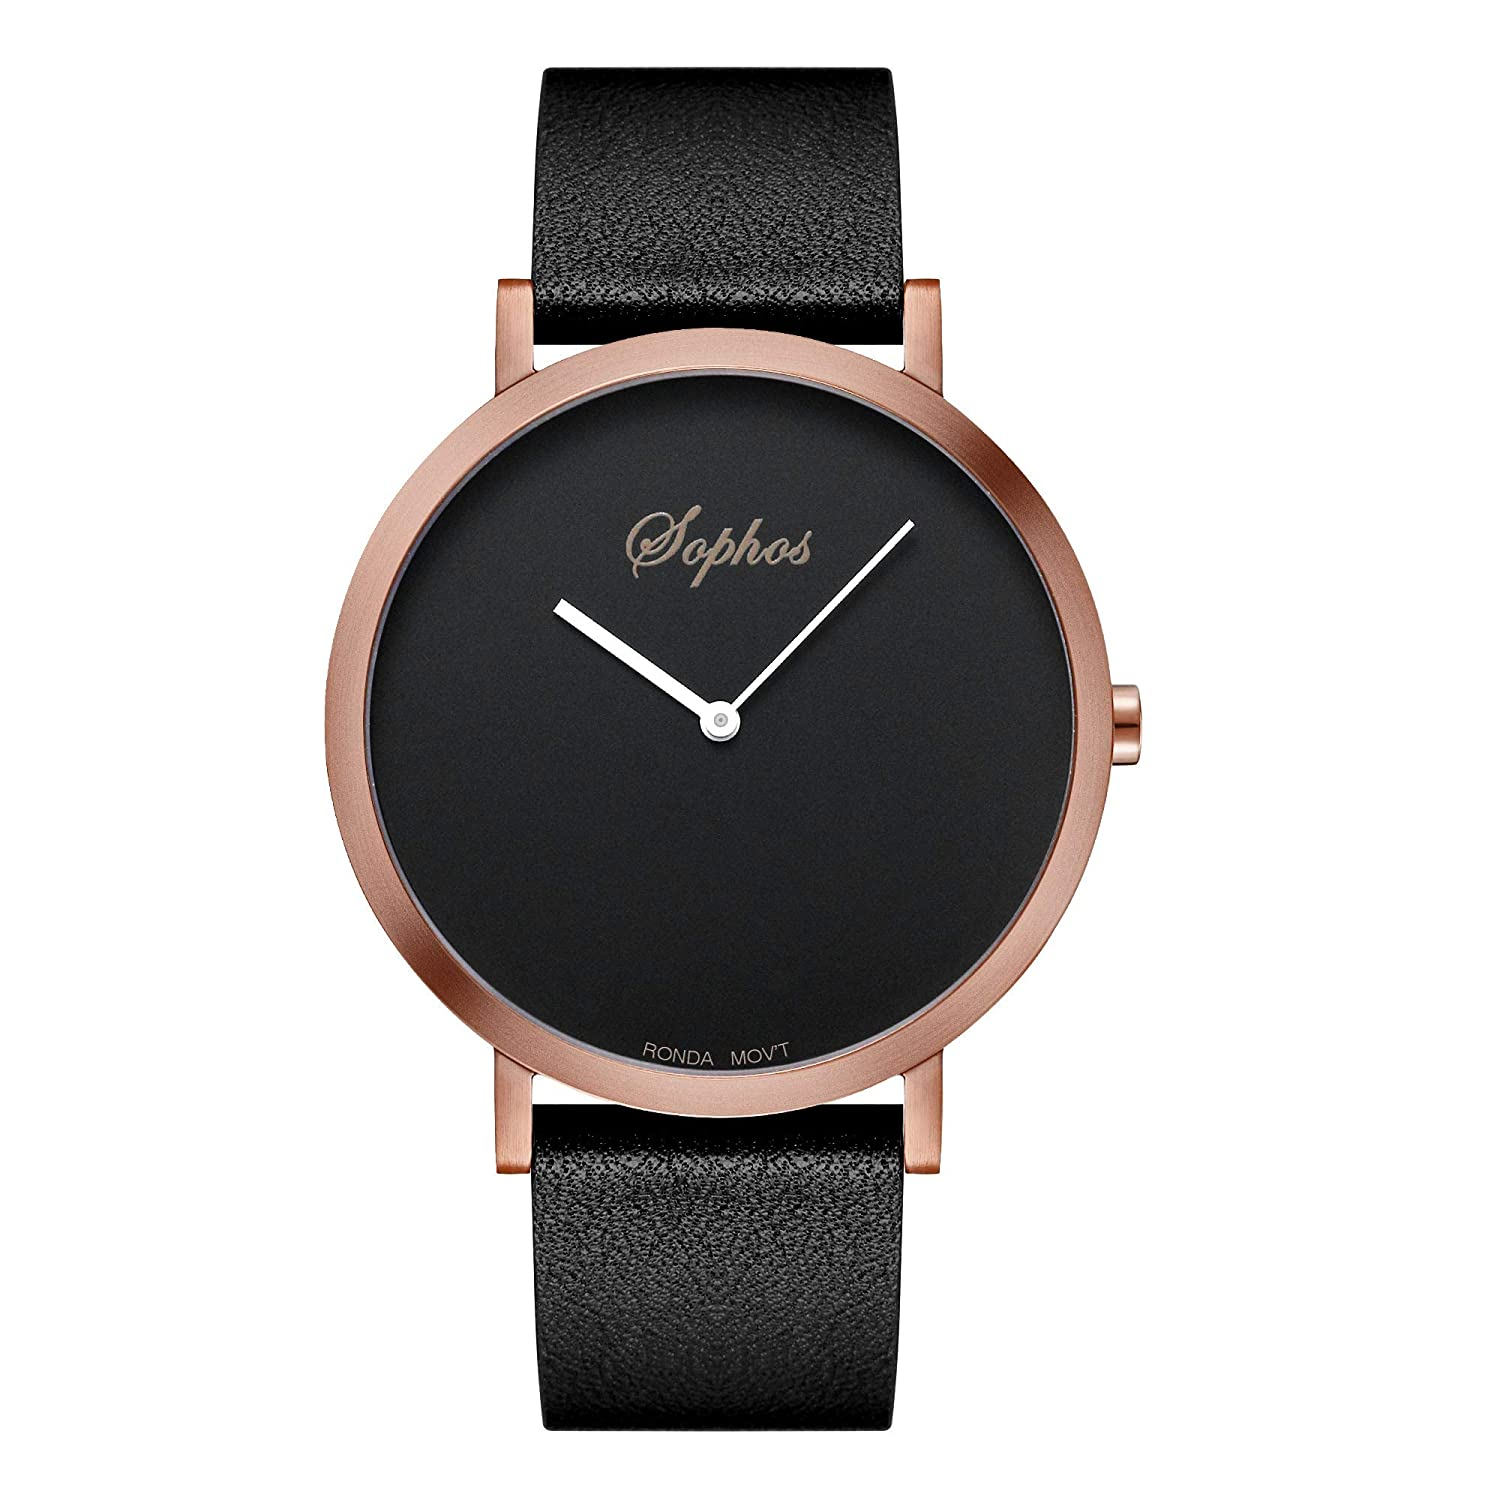 Sophos Collection Watches 42mm, Unisex Minimalist Waterproof Wrist Watch Analogue Quartz Adults Watch with Genuine Leather Watch Strap